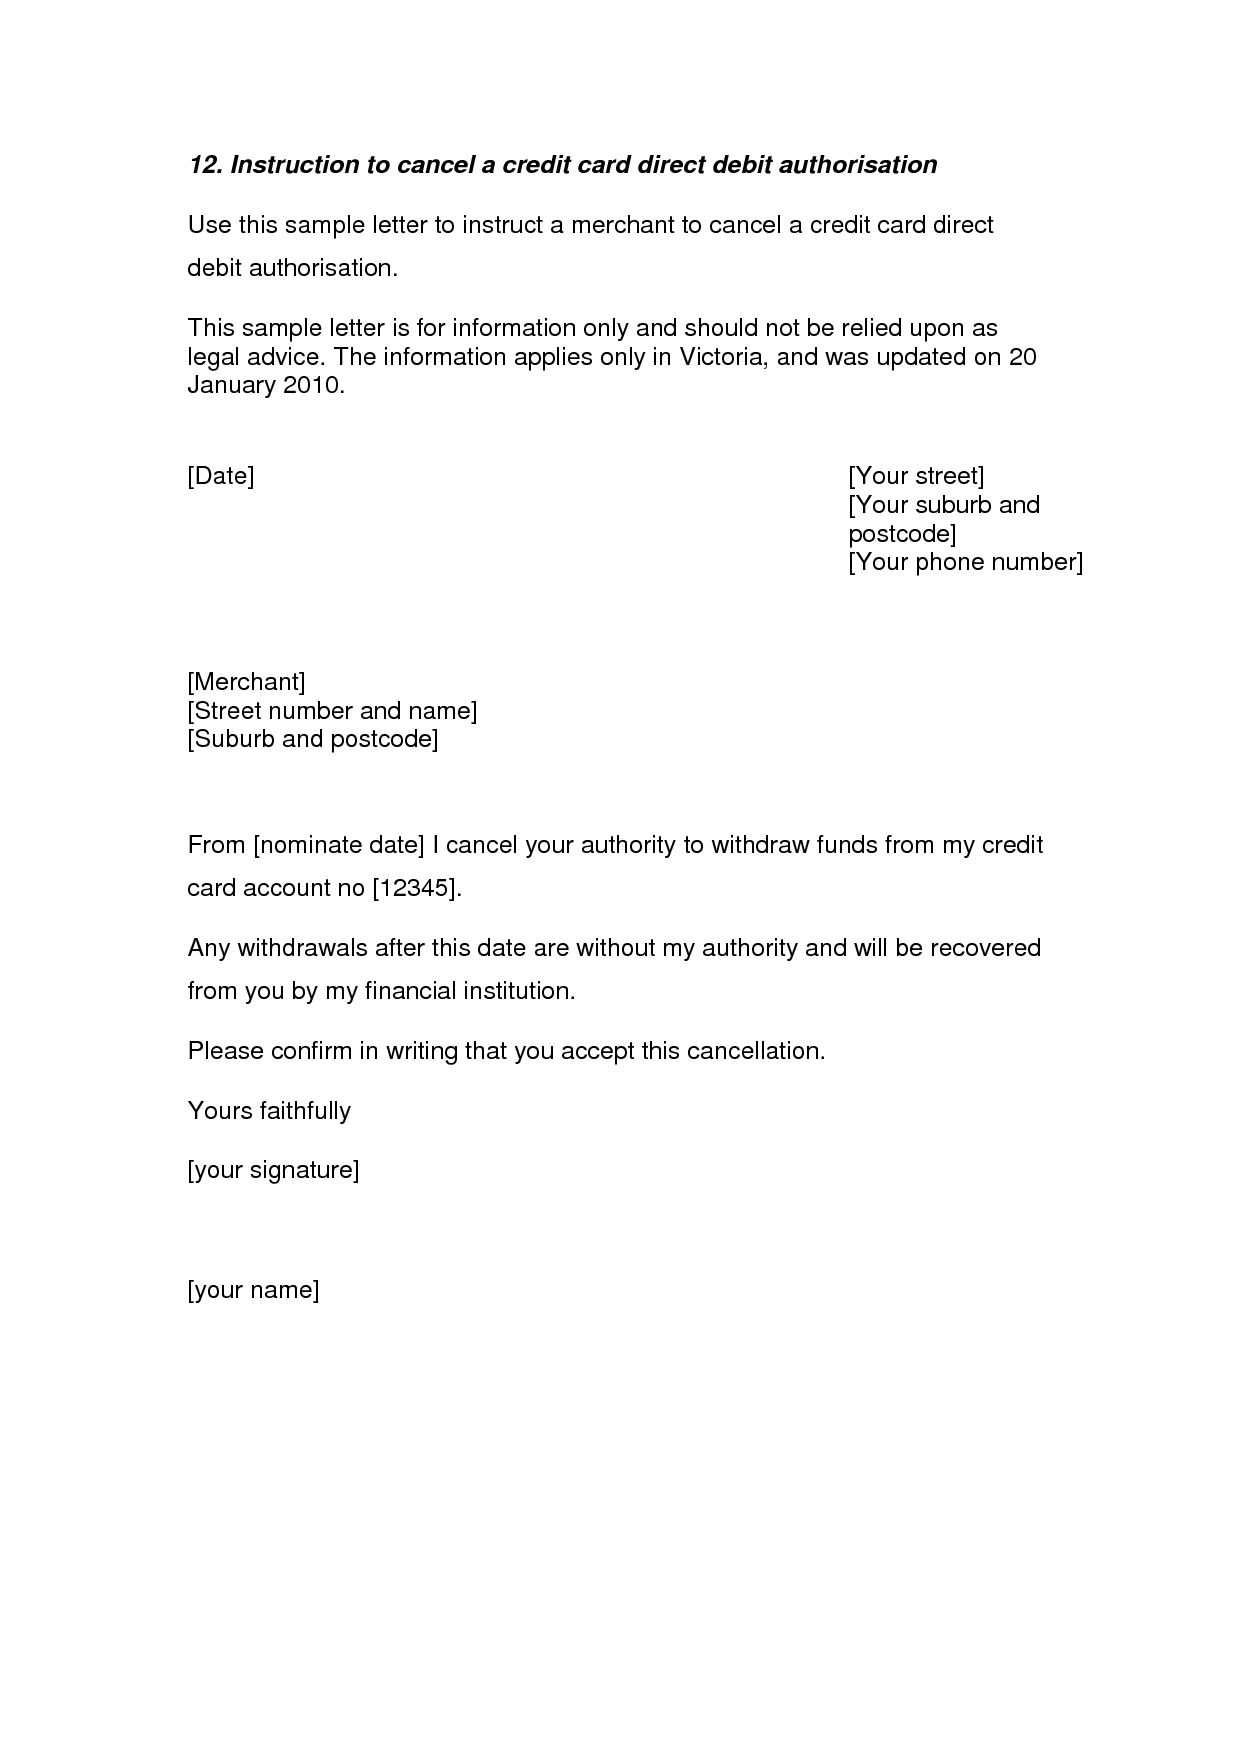 Termination Letter Template Free - Credit Card Cancellation Letter A Credit Card Cancellation Letter